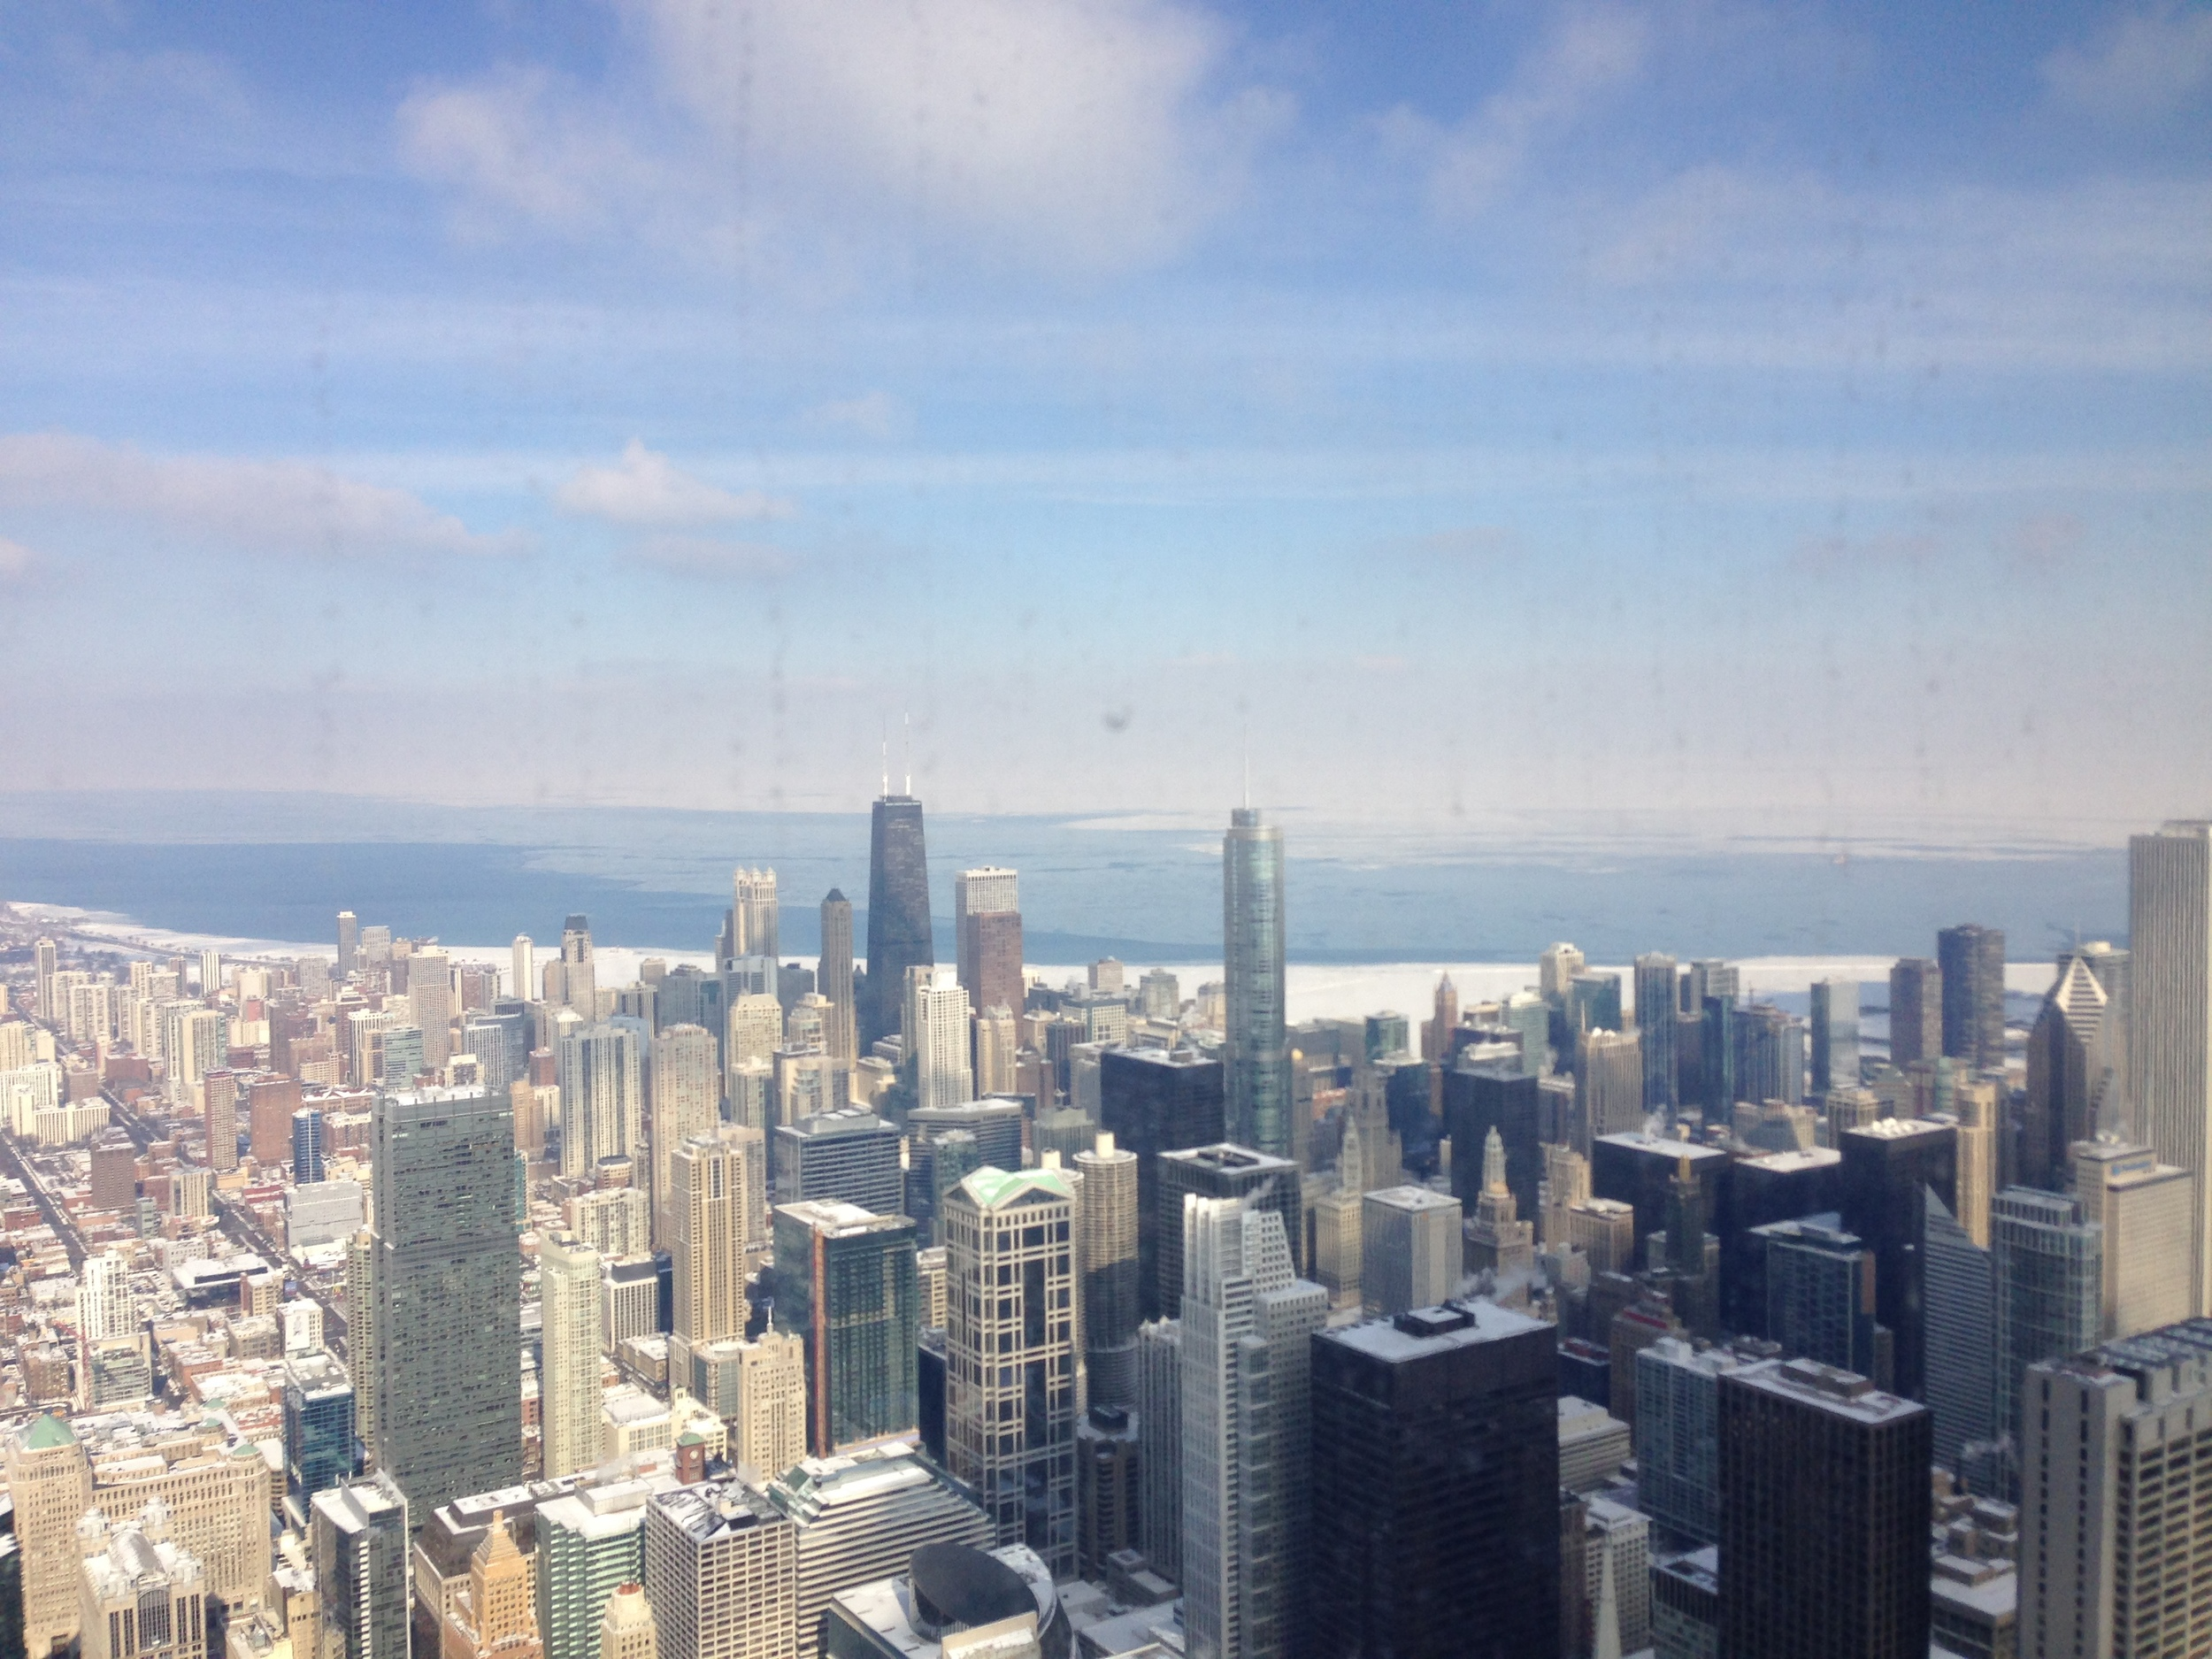 skyline from the top!